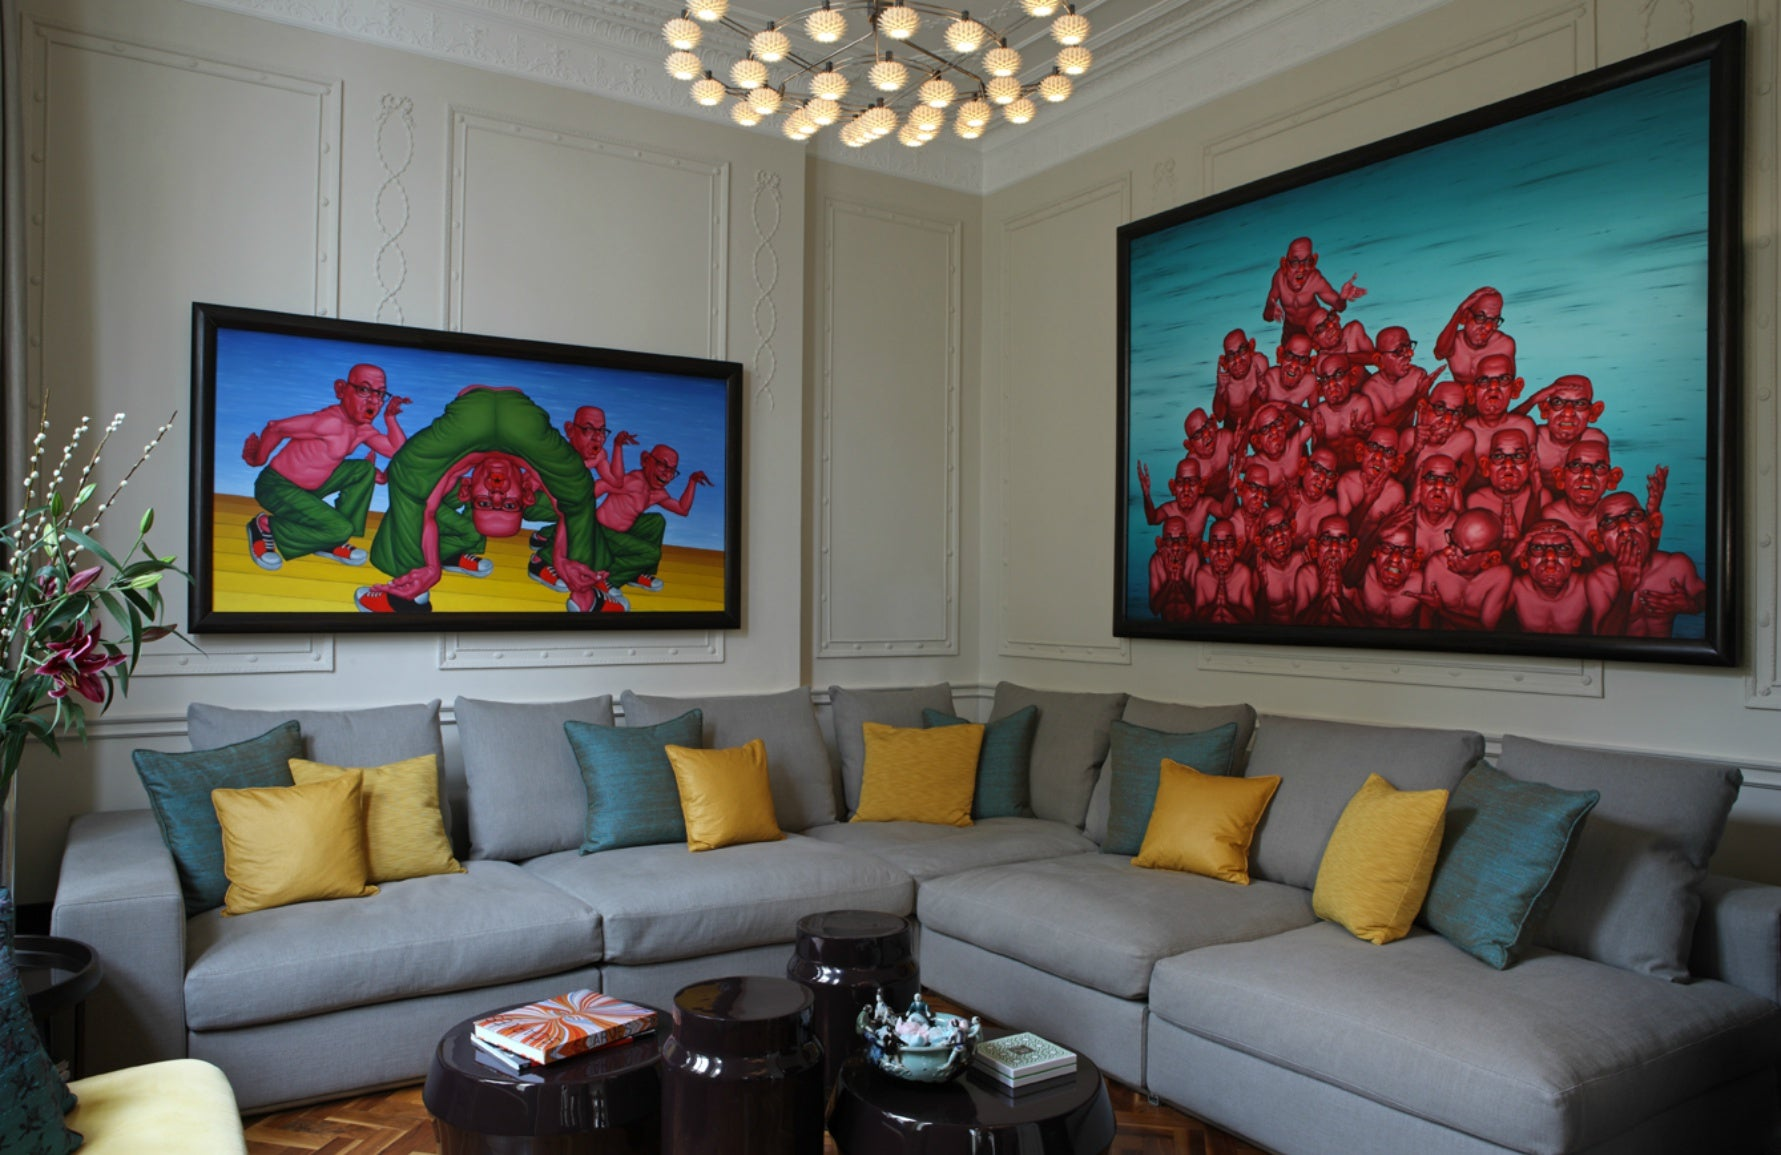 How To Collect Art Like A Professional | Tollgard Group Interiors | Shop art at LuxDeco.com